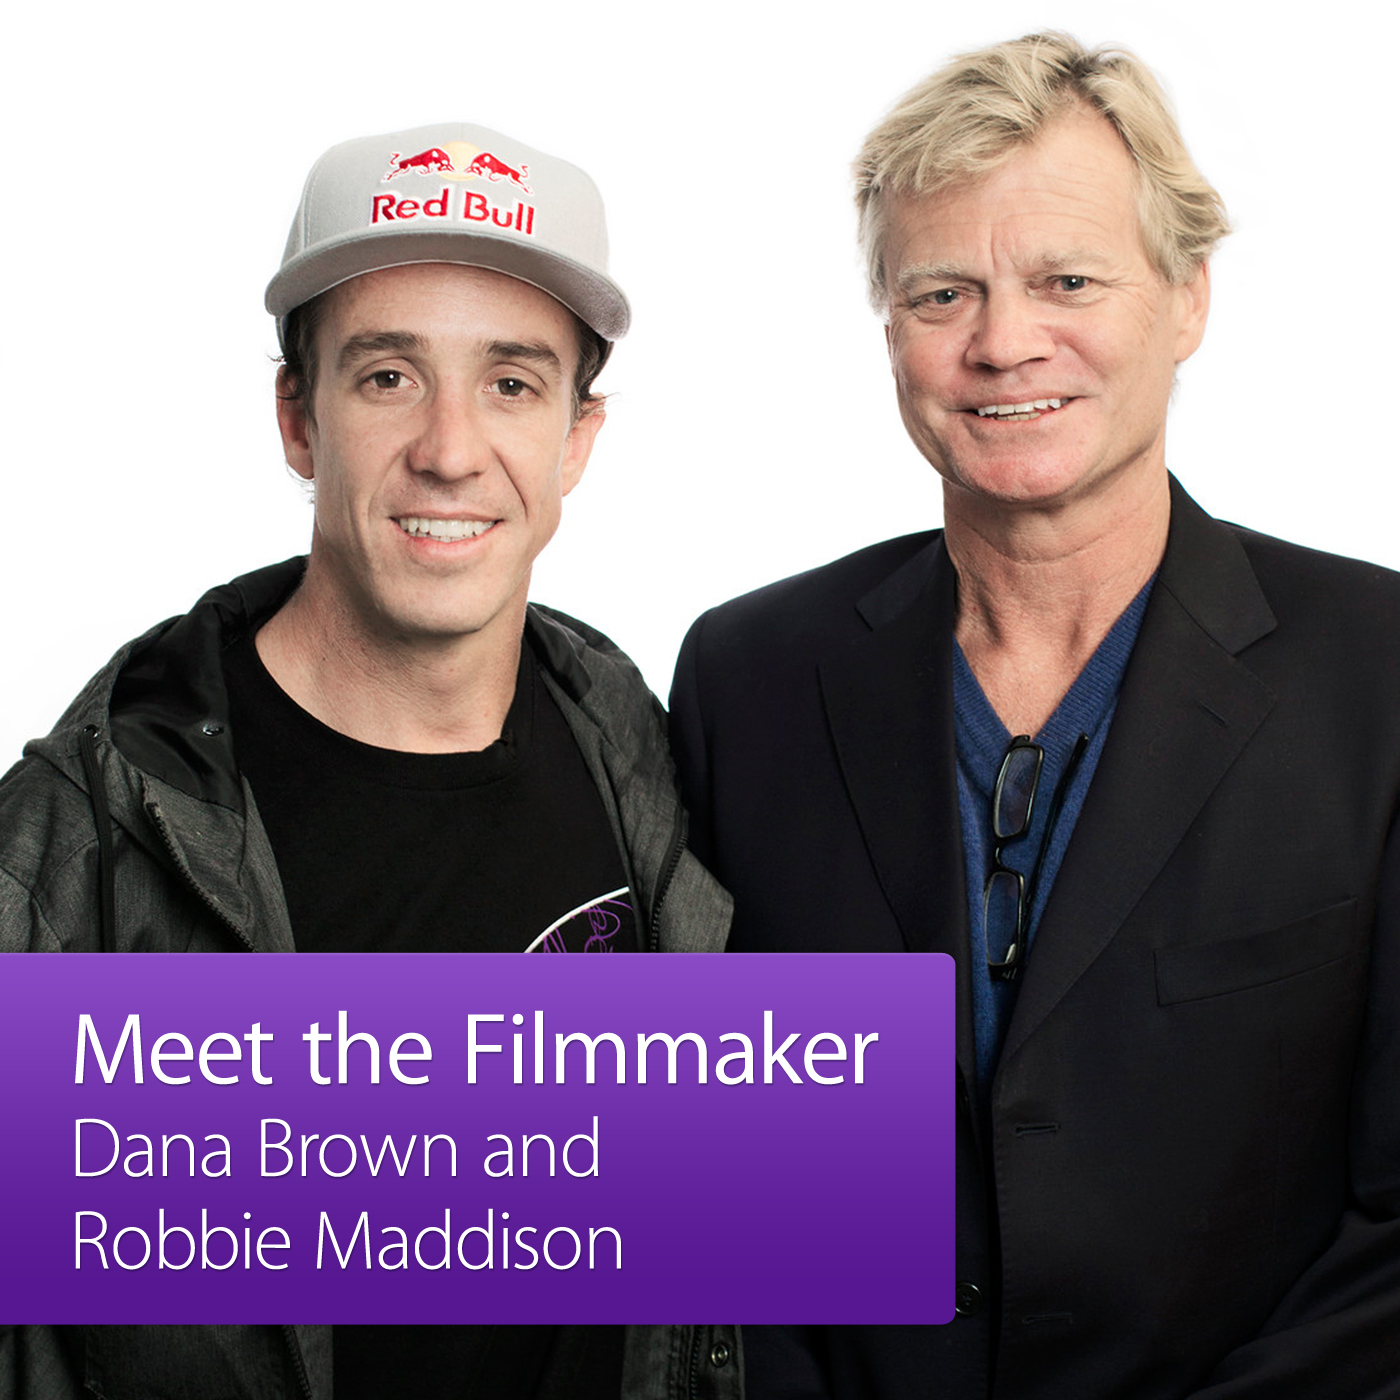 Dana Brown and Robbie Maddison: Meet the Filmmaker